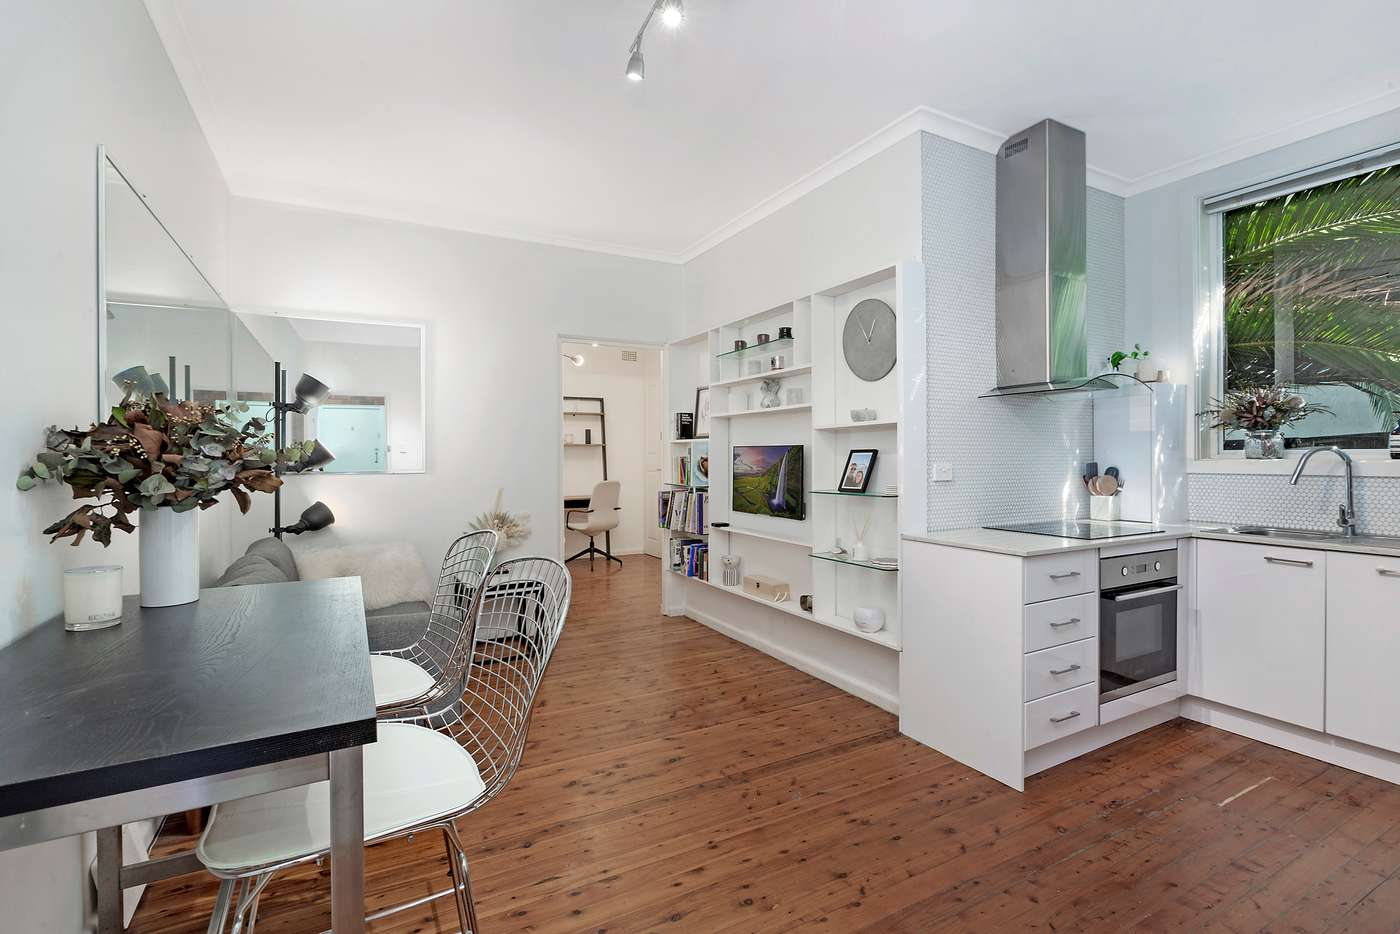 Main view of Homely apartment listing, 11/15 Gosport Street, Cronulla NSW 2230